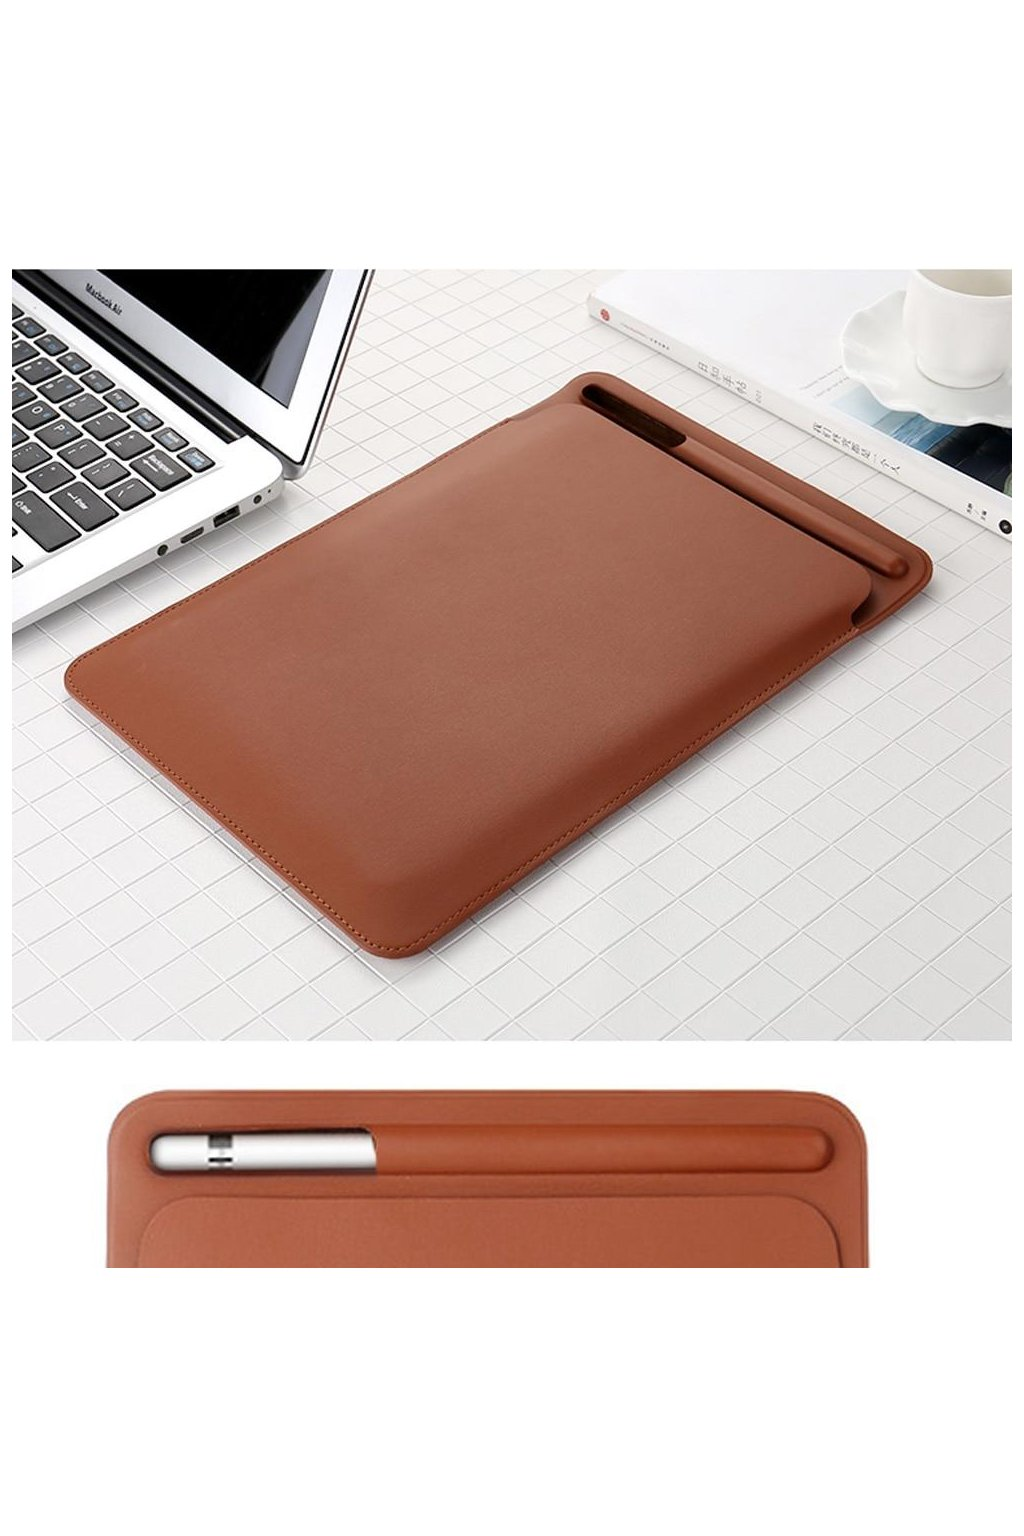 Premium PU Imitation leather Sleeve Case for iPad Pro 12 9 2017 Pouch Bag Cover with